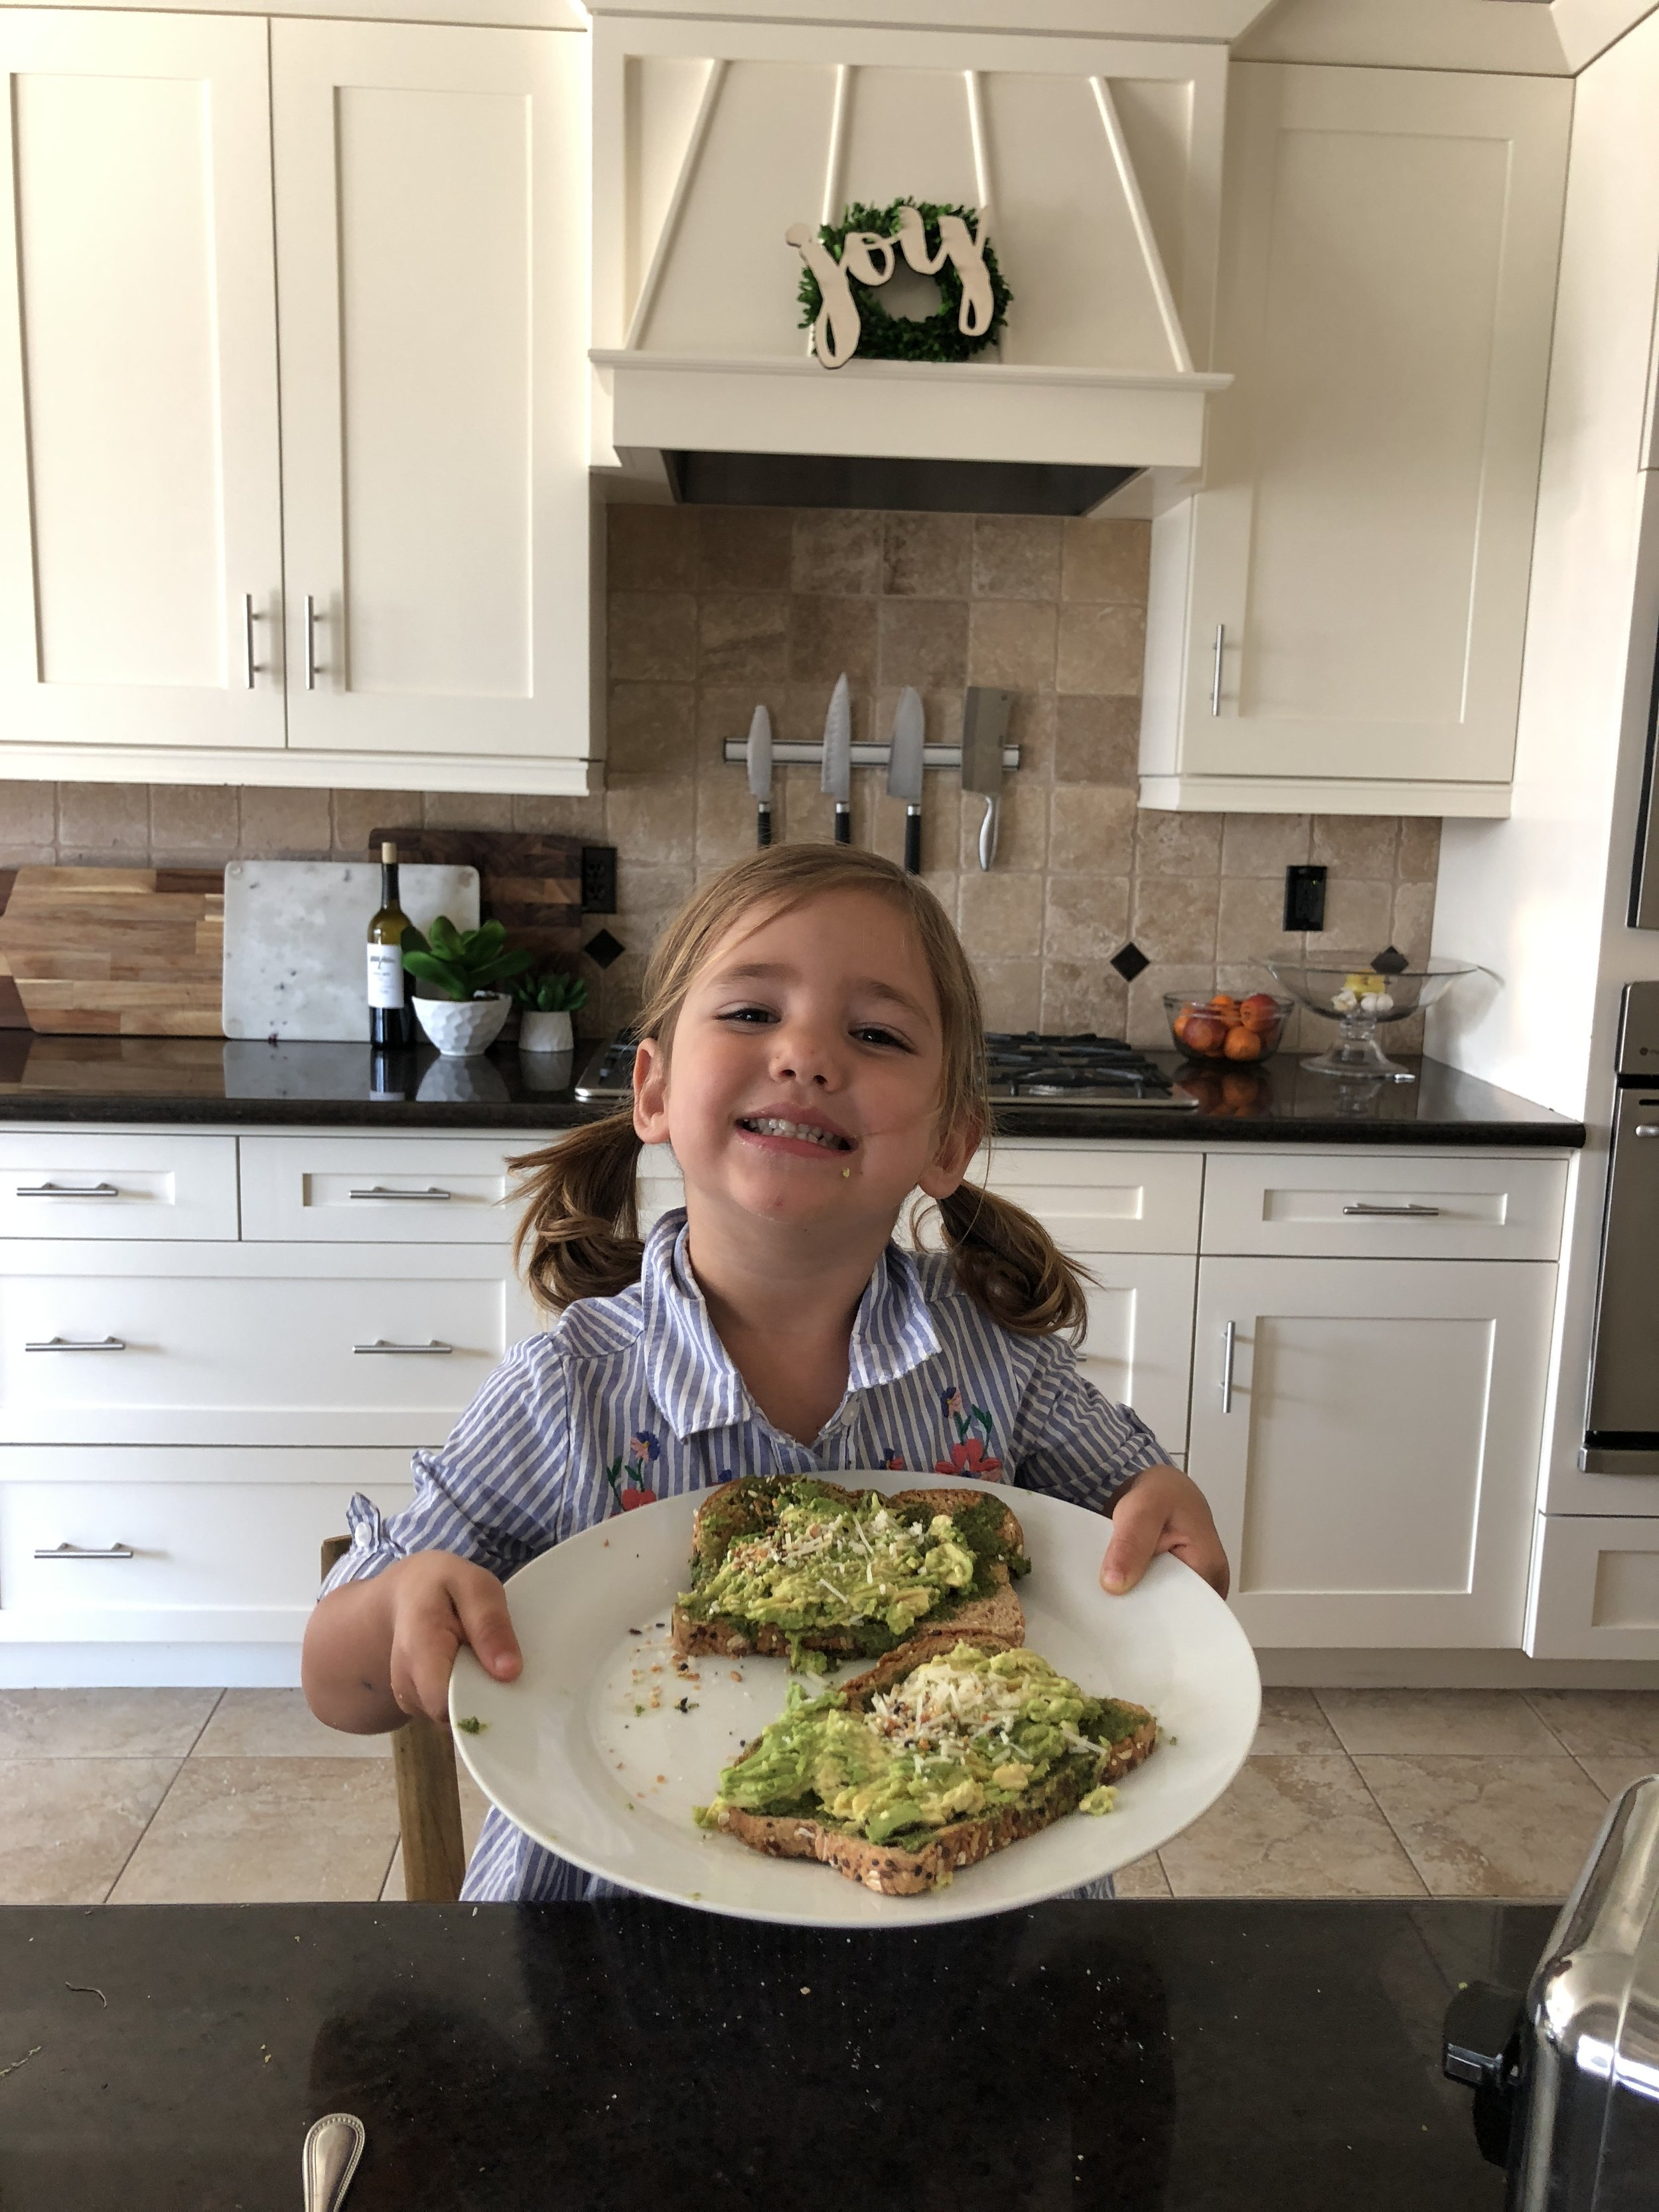 Let kids take over the kitchen and make avocado toast. www.ChefShayna.com